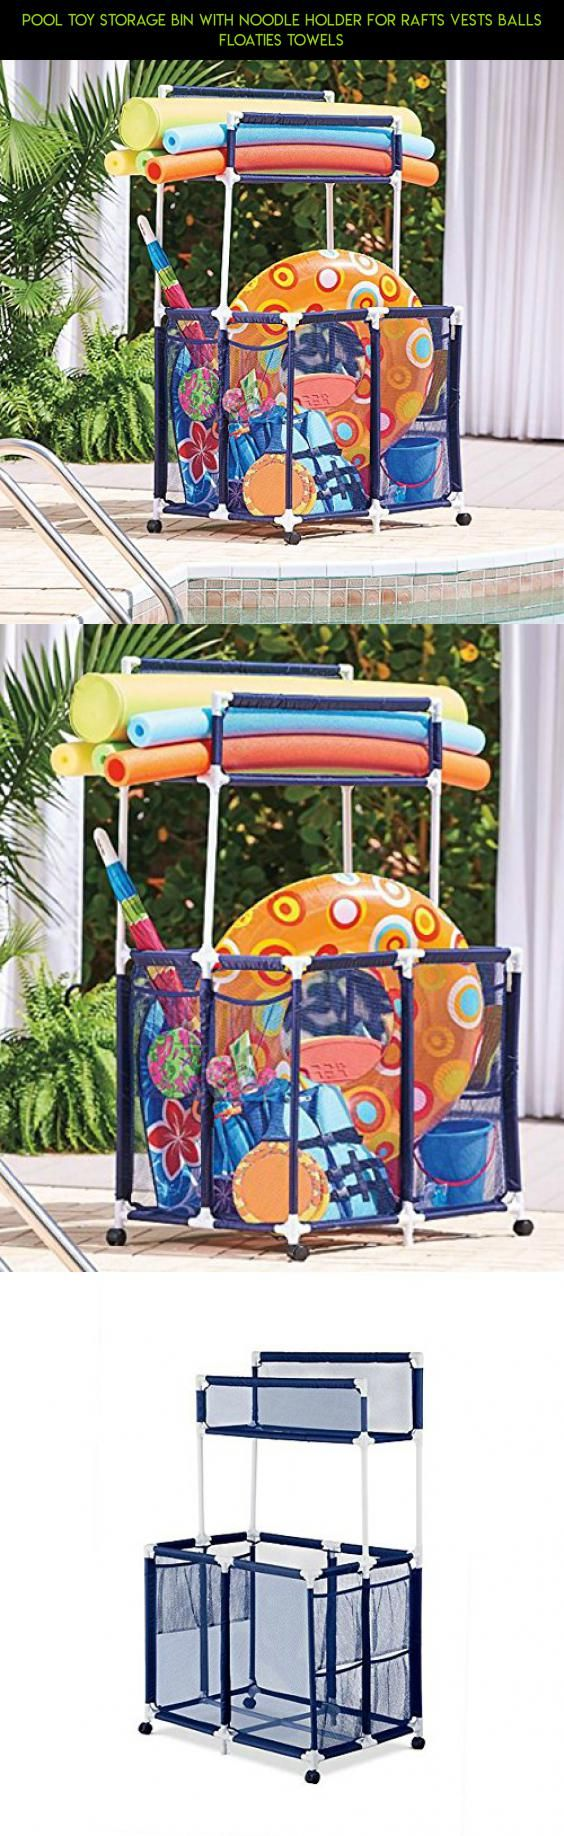 Pool Toy Storage Bin With Noodle Holder For Rafts Vests Balls Floaties  Towels #products #